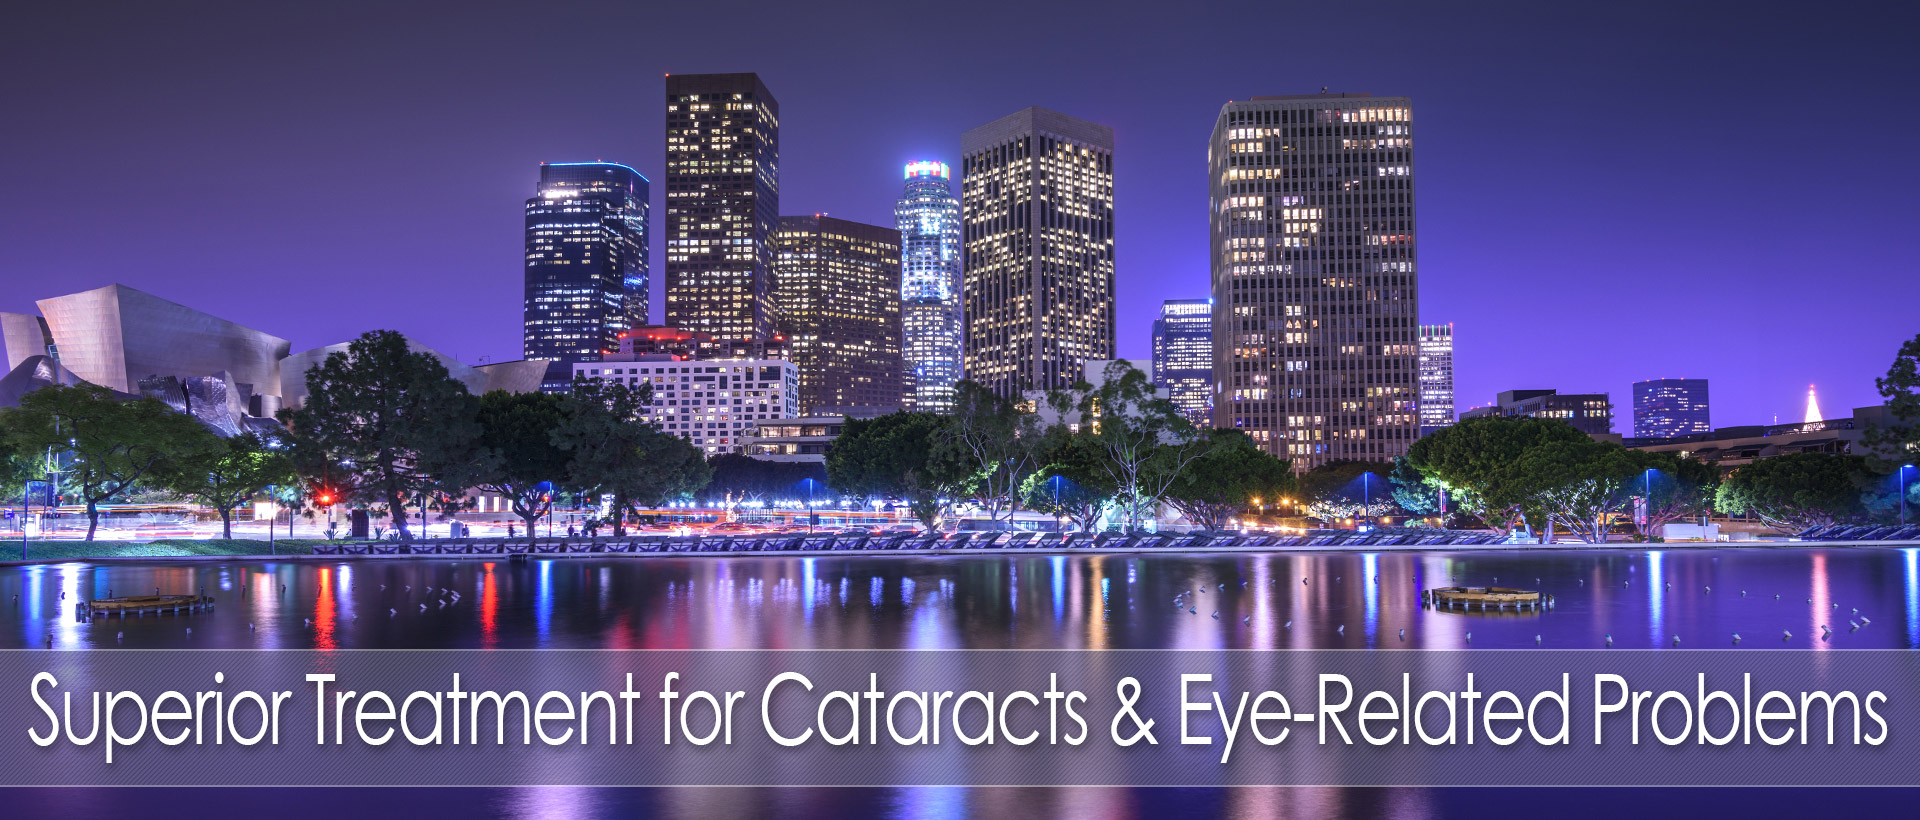 superior treatment for cataracts and eye related problems los angeles ca